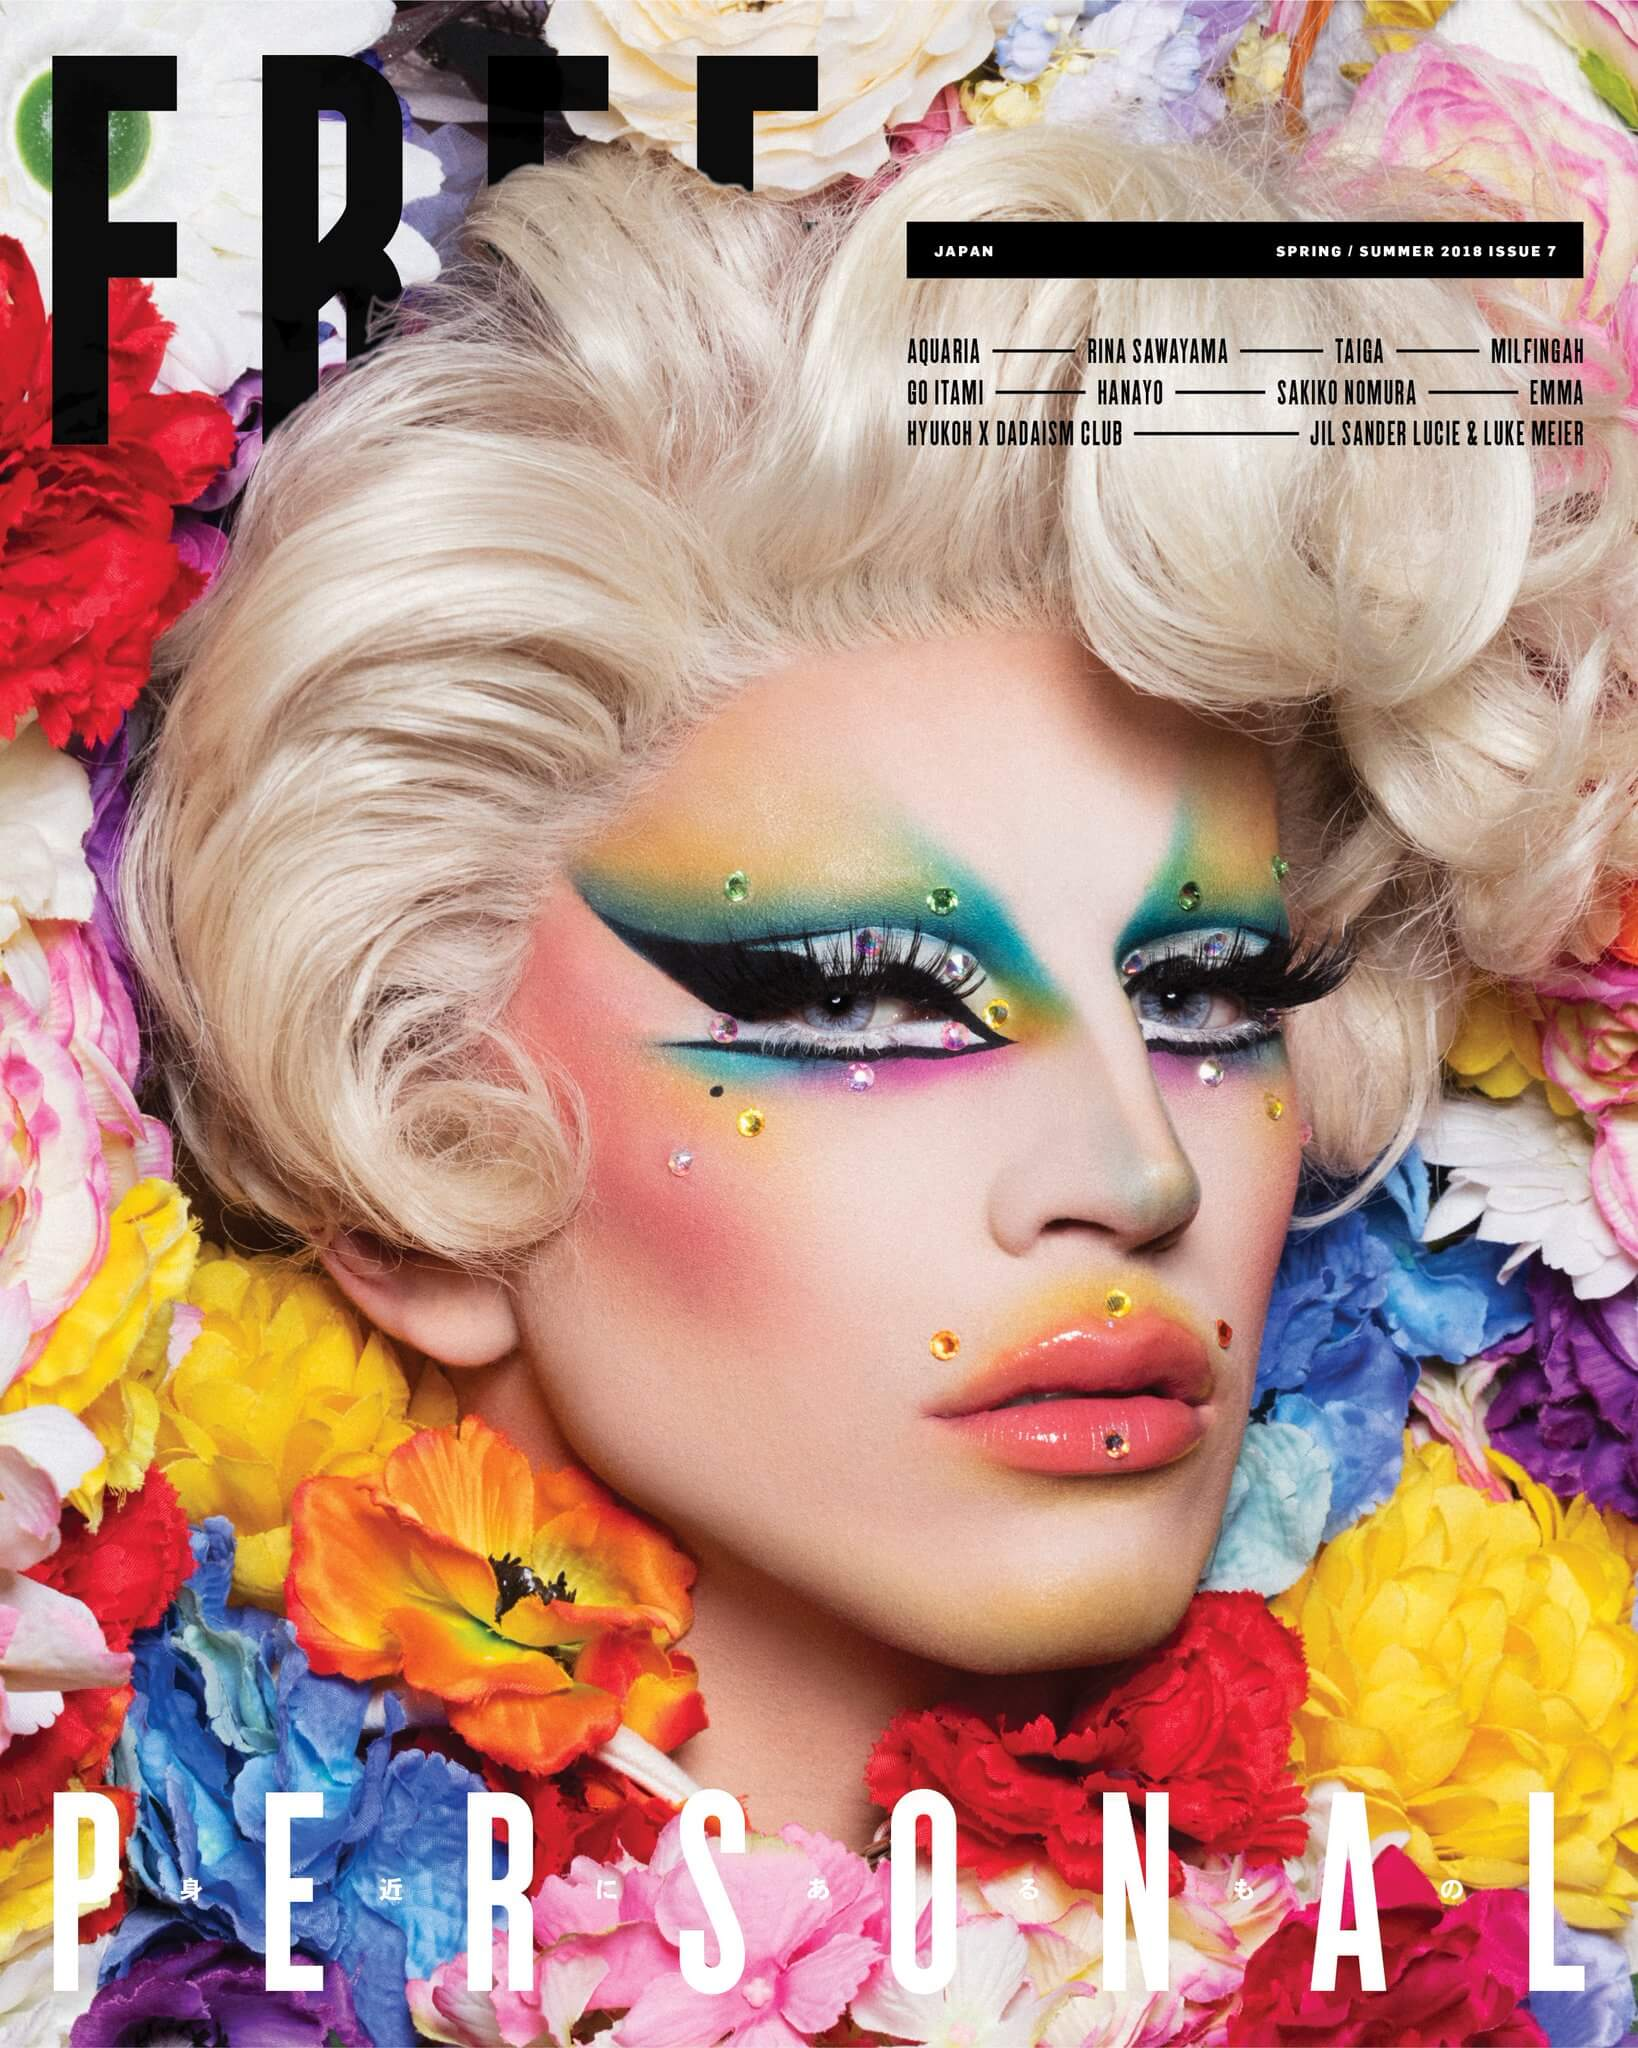 Aquaria Cover for Free Magazine (Spring/Summer 2018)